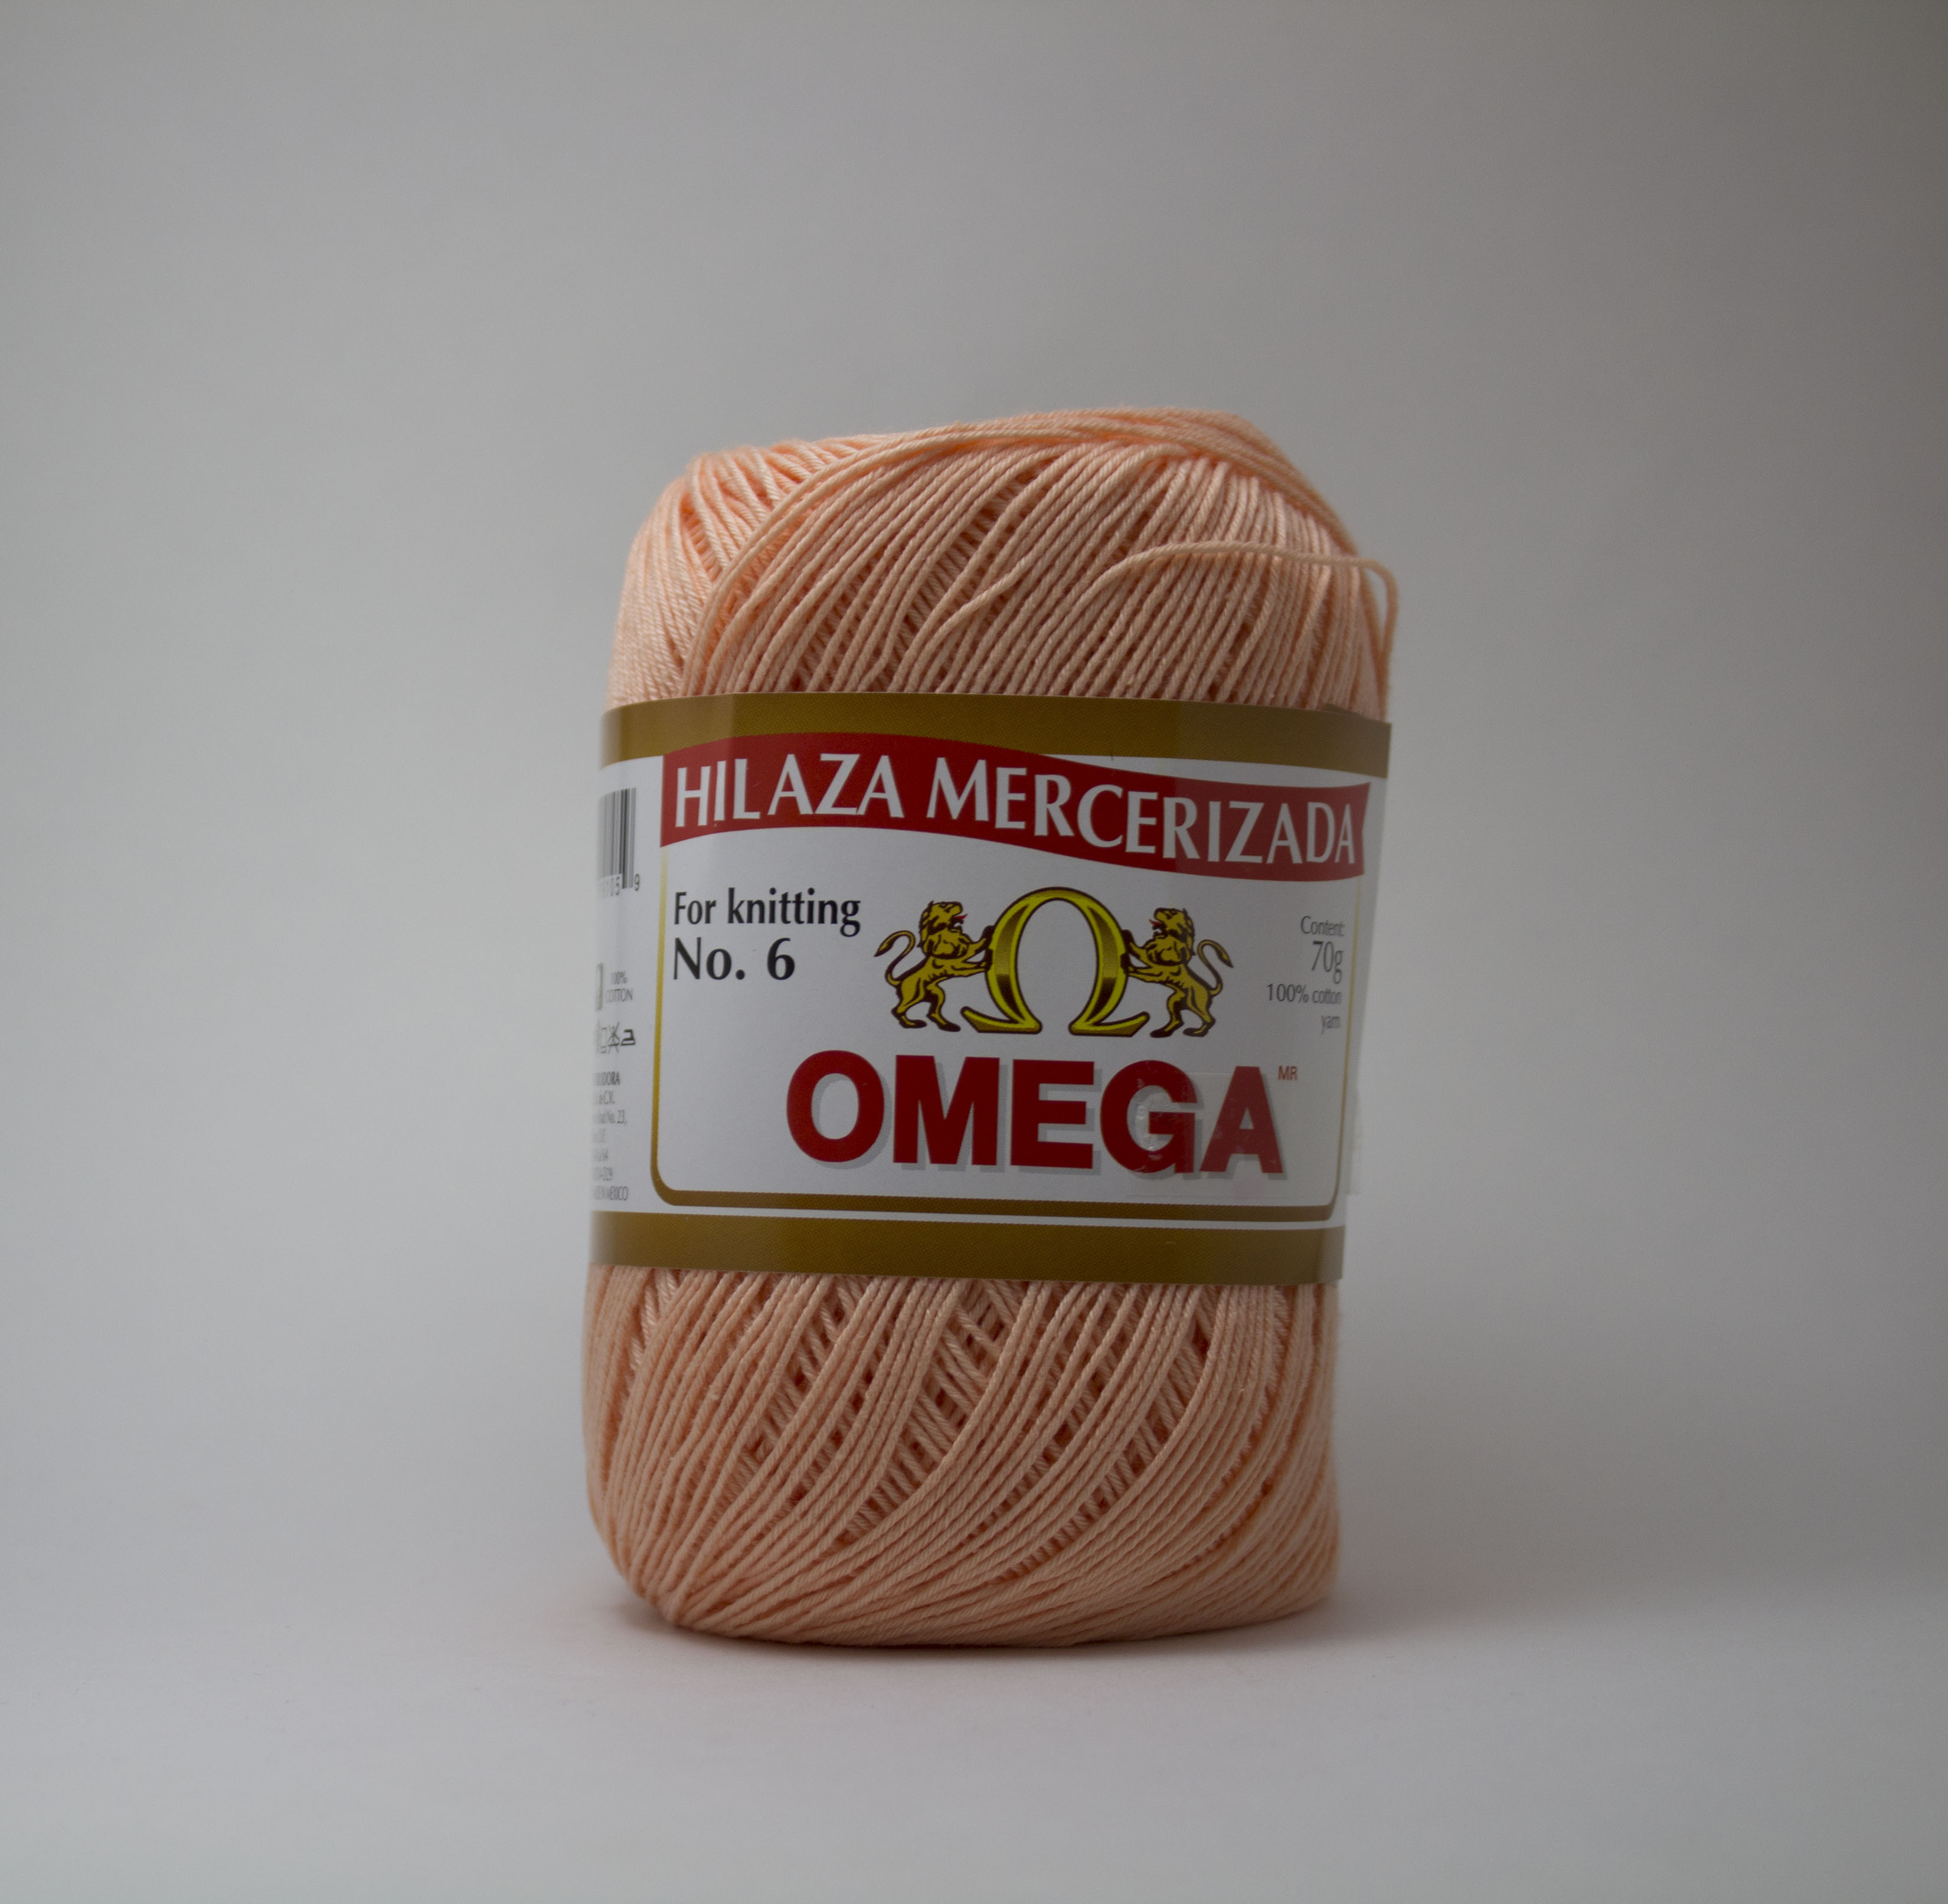 Omega Yarn Beautiful Hilaza Omega Yarns 6 – Milartmarroquin Of Awesome 49 Pictures Omega Yarn